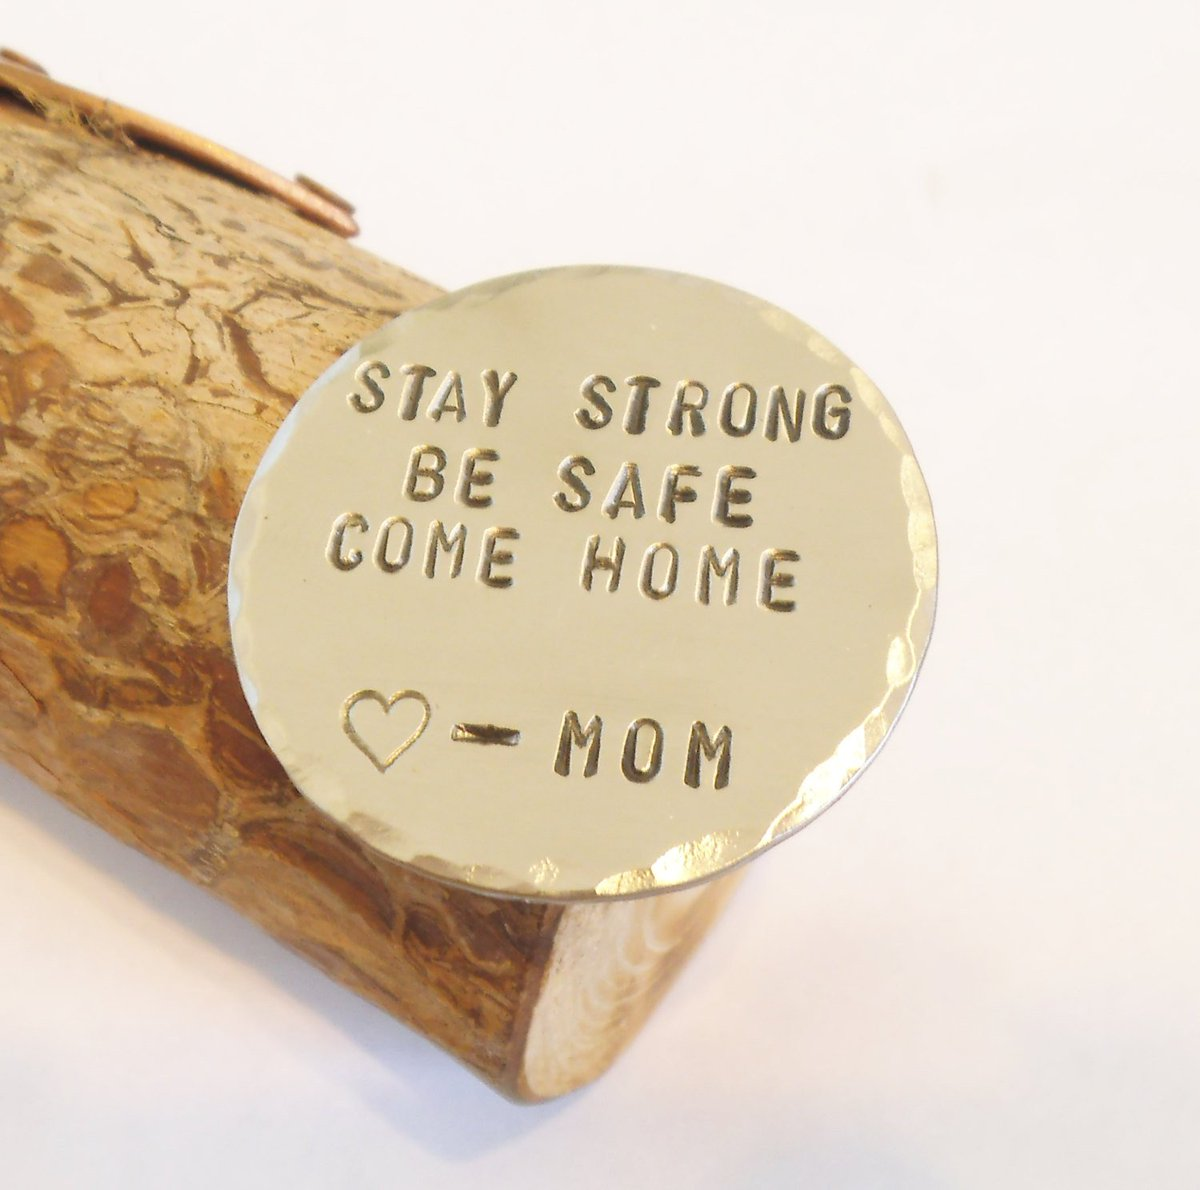 Stay Strong Be Safe Come Home - Personalized Wallet Insert http://tuppu.net/4bd4cf43 #Shopify #CandTCustomLures #G1